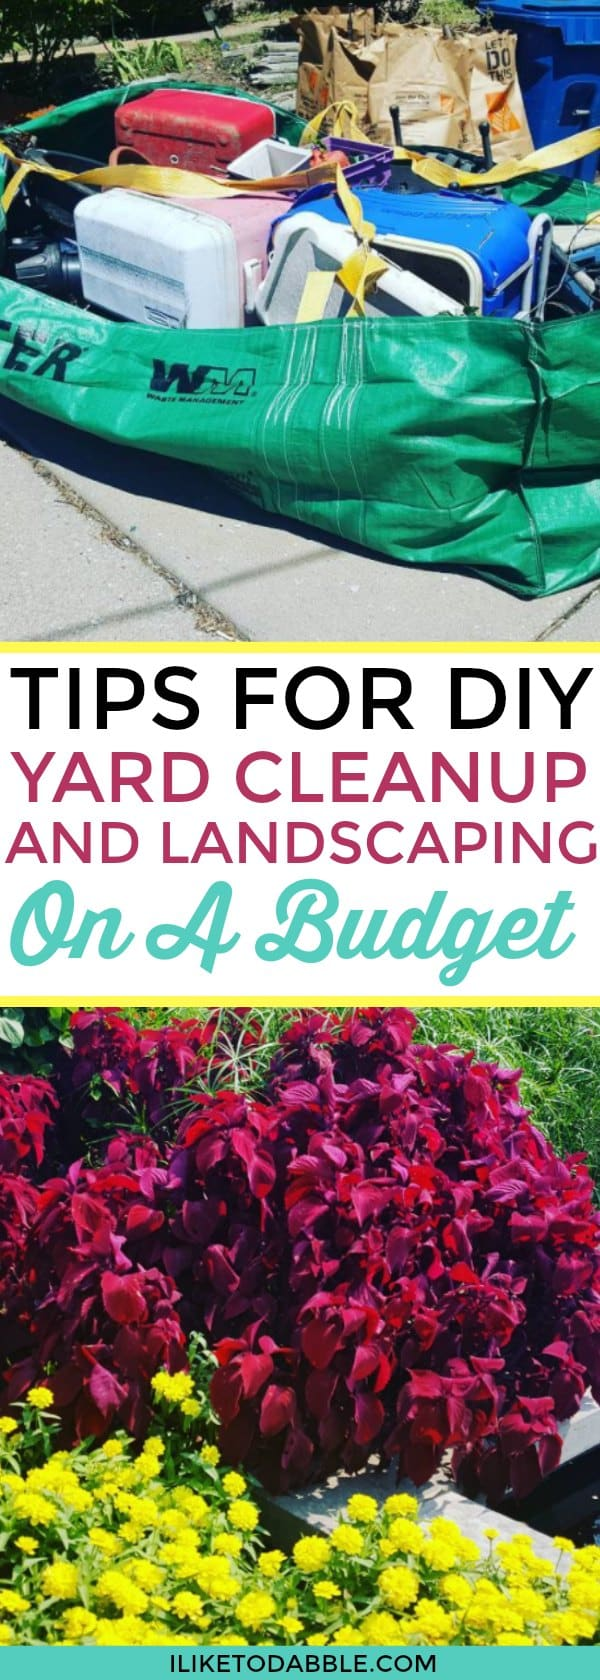 Tips for diy yard cleanup and landscaping on a budget. Cheap landscaping ideas. Landscaping on a budget. Budgeting tips. Frugal and thirfty living. Saving money. Home and garden. Home improvement. #budgetingtips #homeandgarden #yardcleanup #landscaping #landscapingforcheap